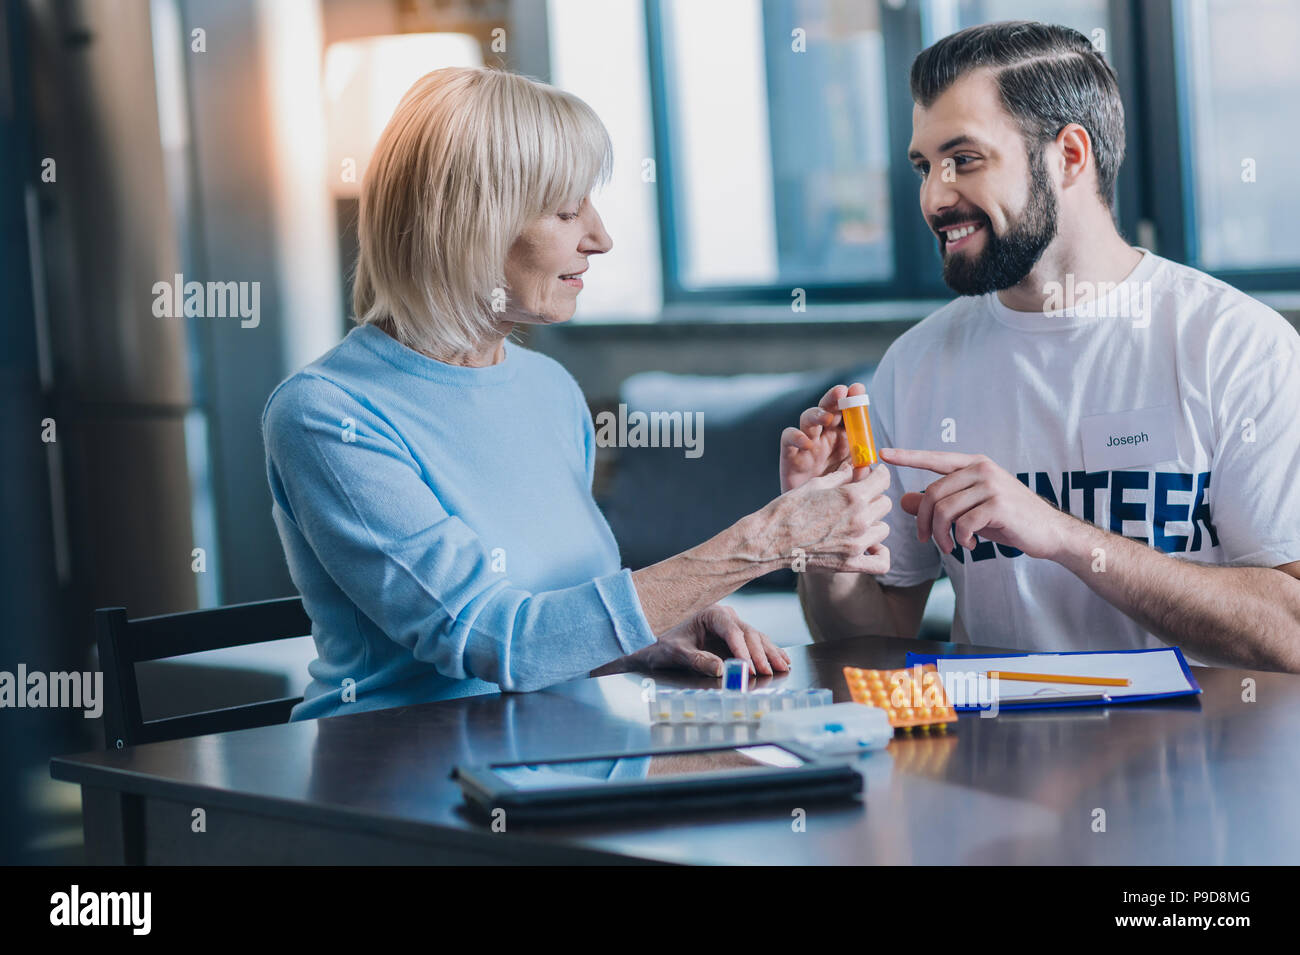 Smiling man advising new pills to a woman - Stock Image